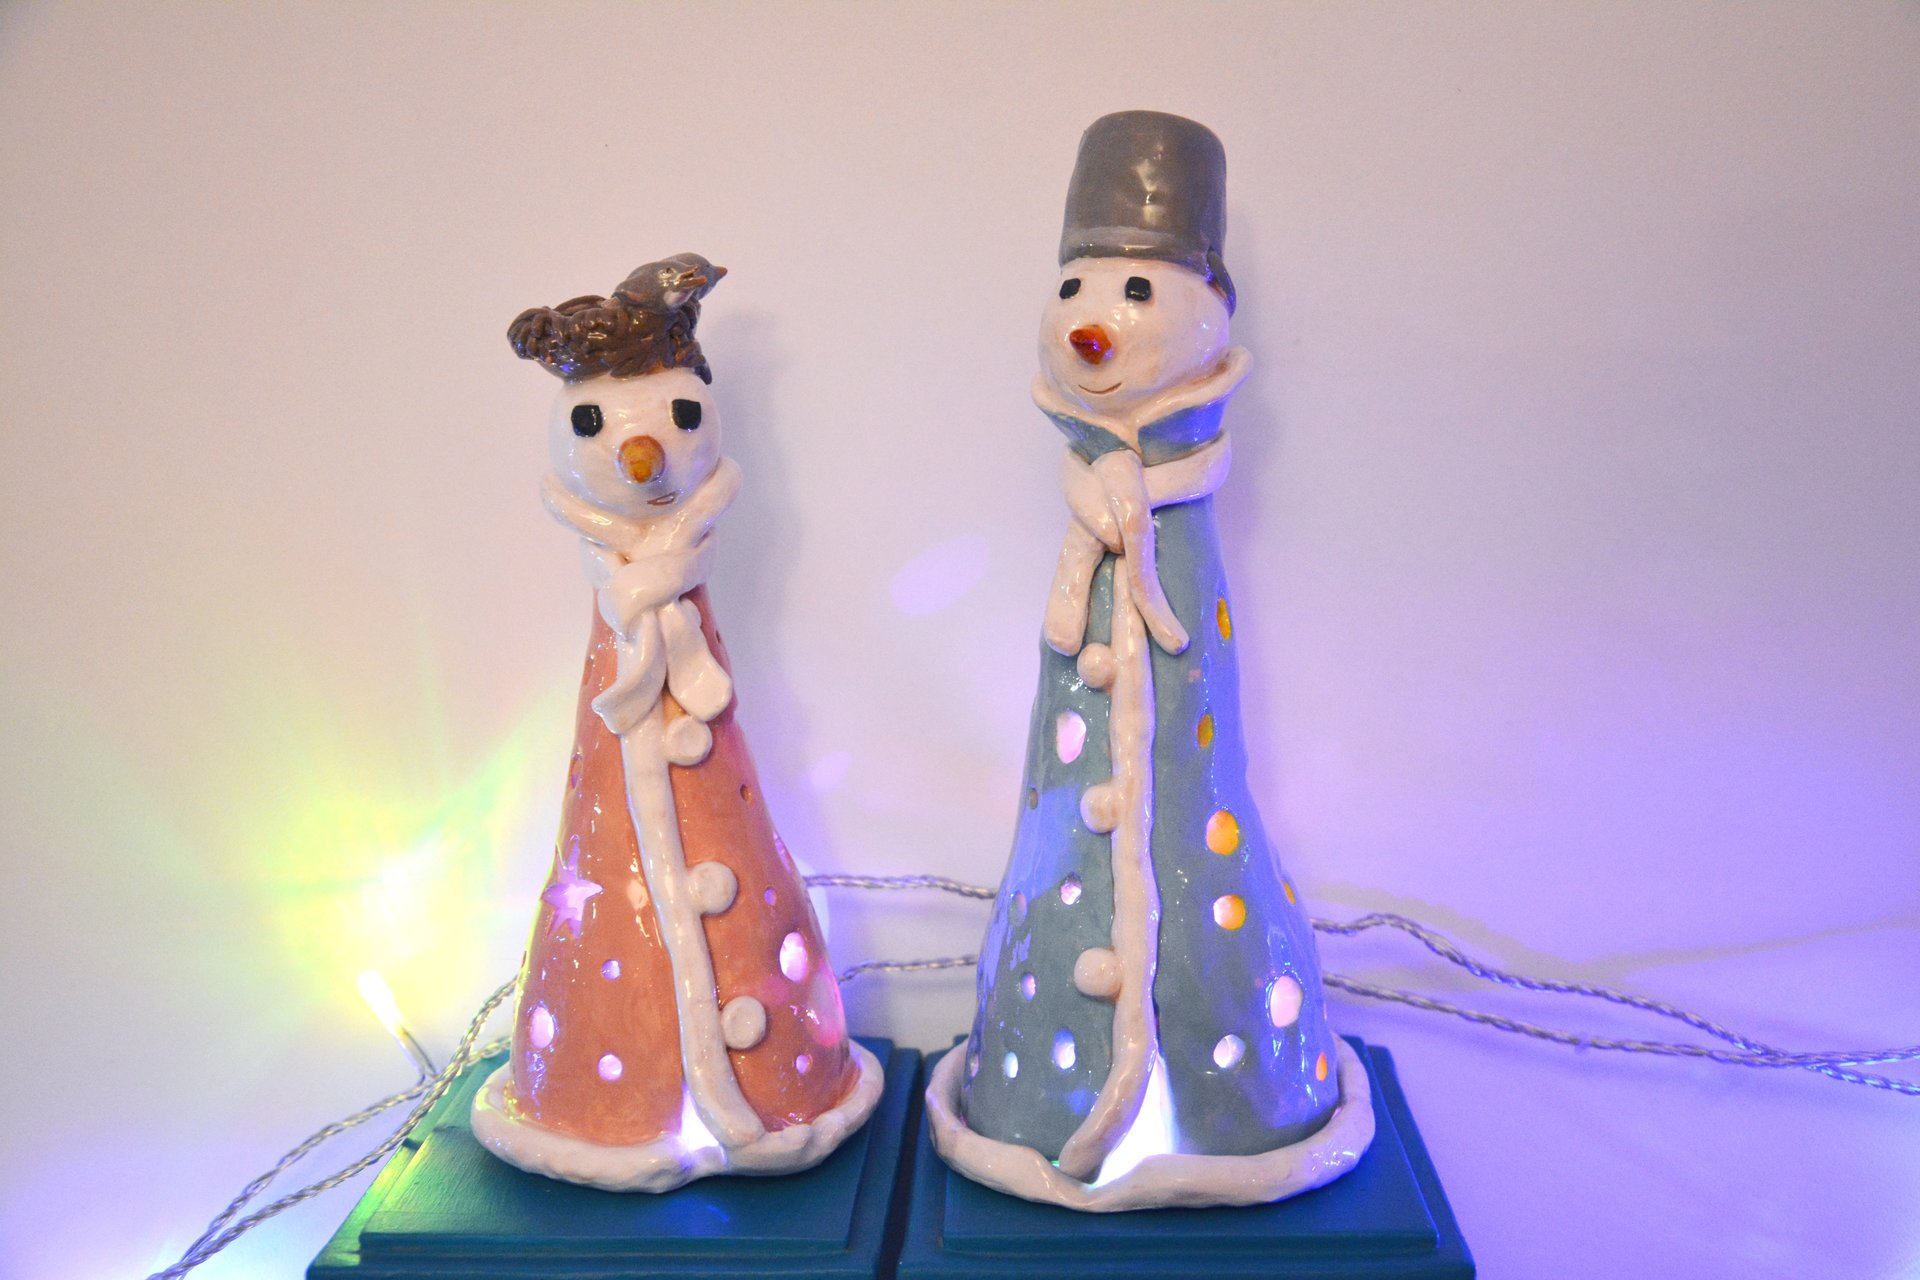 A couple of Snowmen - Ceramic new year's decor, height - 19 cm and 23 cm, photo 1 of 2.